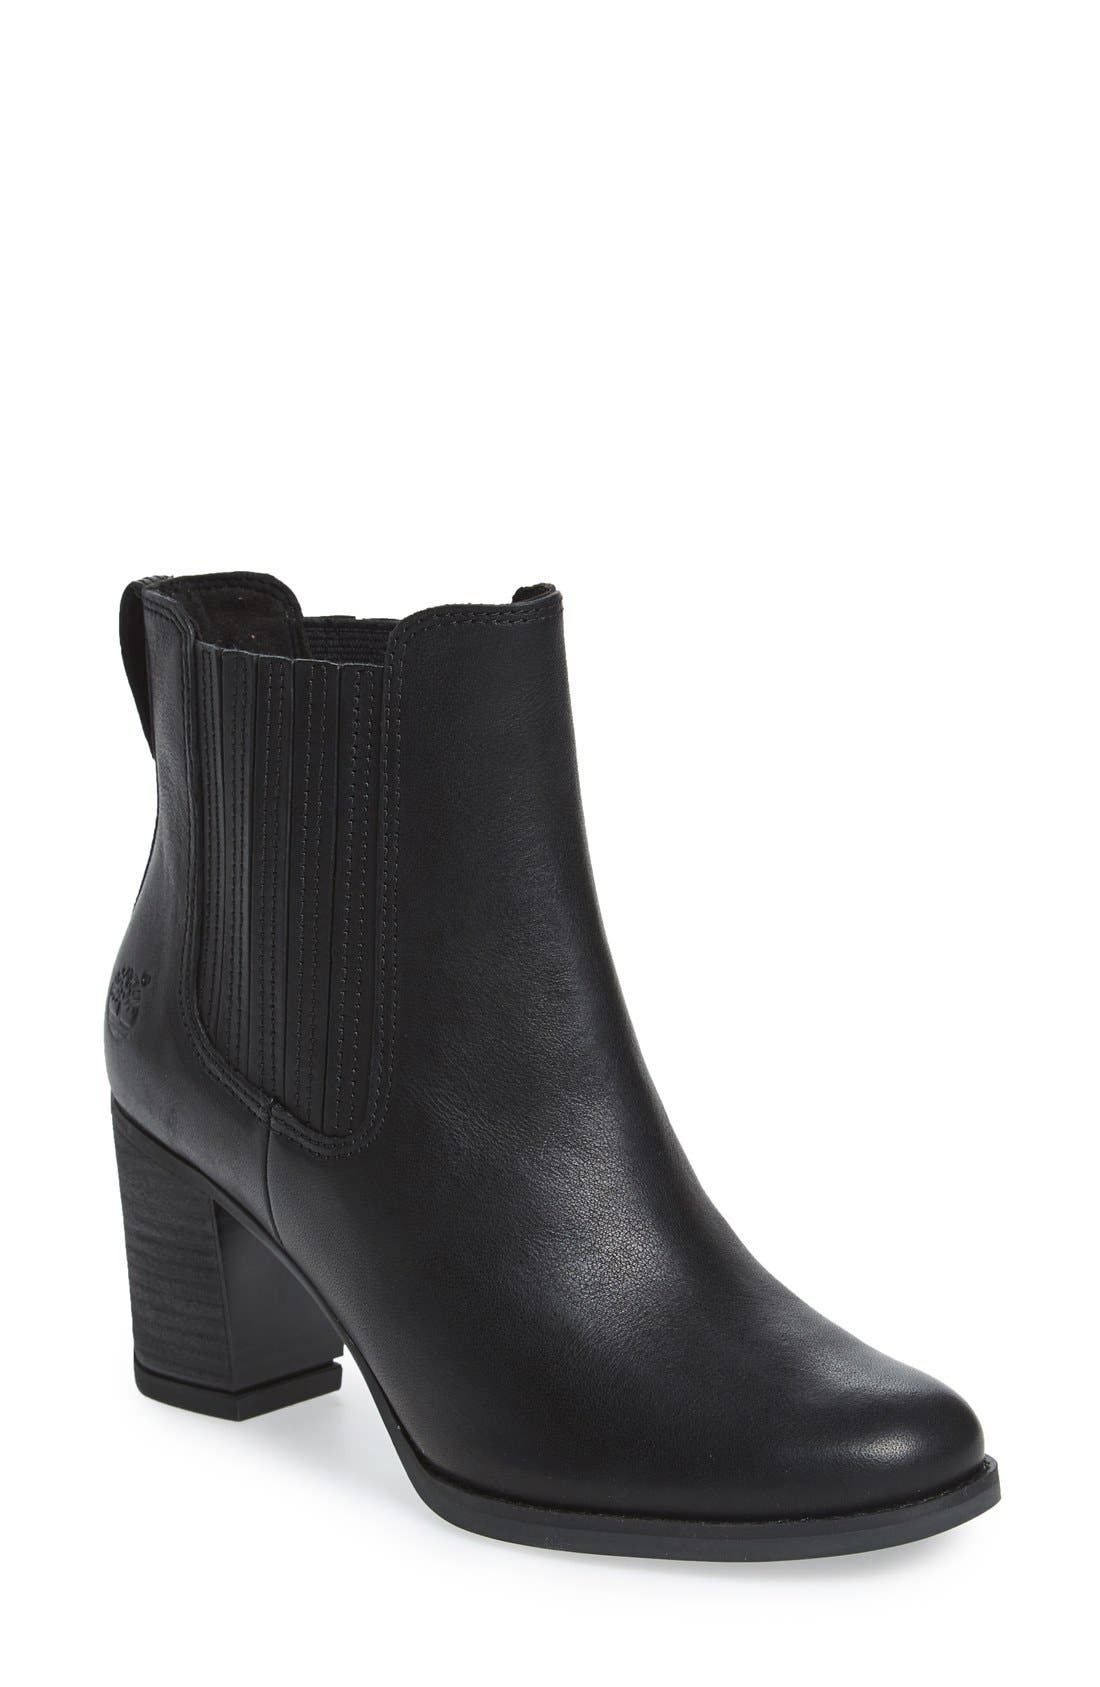 'Atlantic Heights' Chelsea Boot,                             Main thumbnail 1, color,                             001